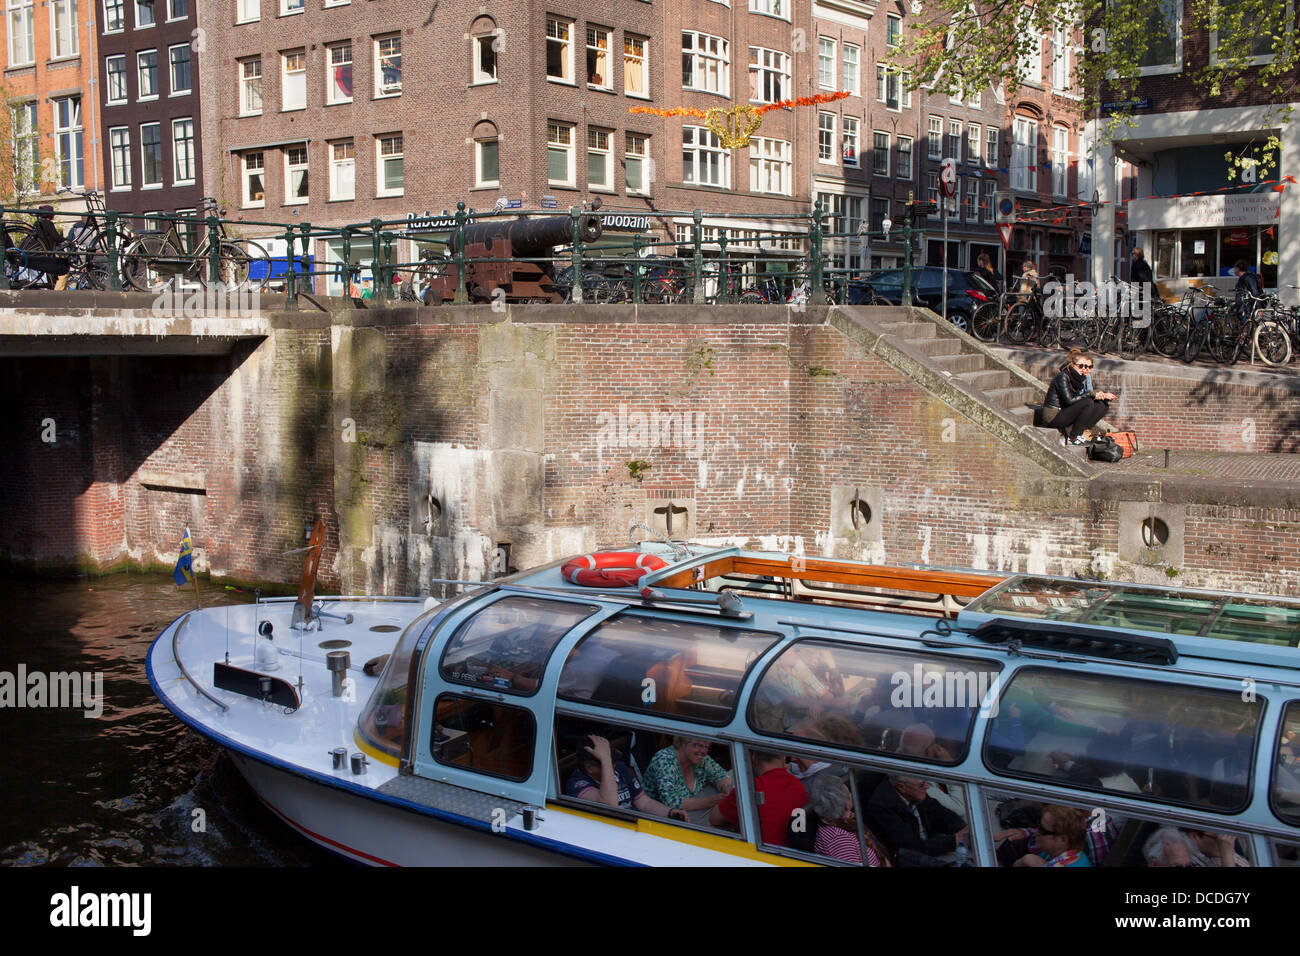 Cruise boat on Korte Prinsengracht canal and buildings on Haarlemmerstraat in Amsterdam, Holland, Netherlands. - Stock Image